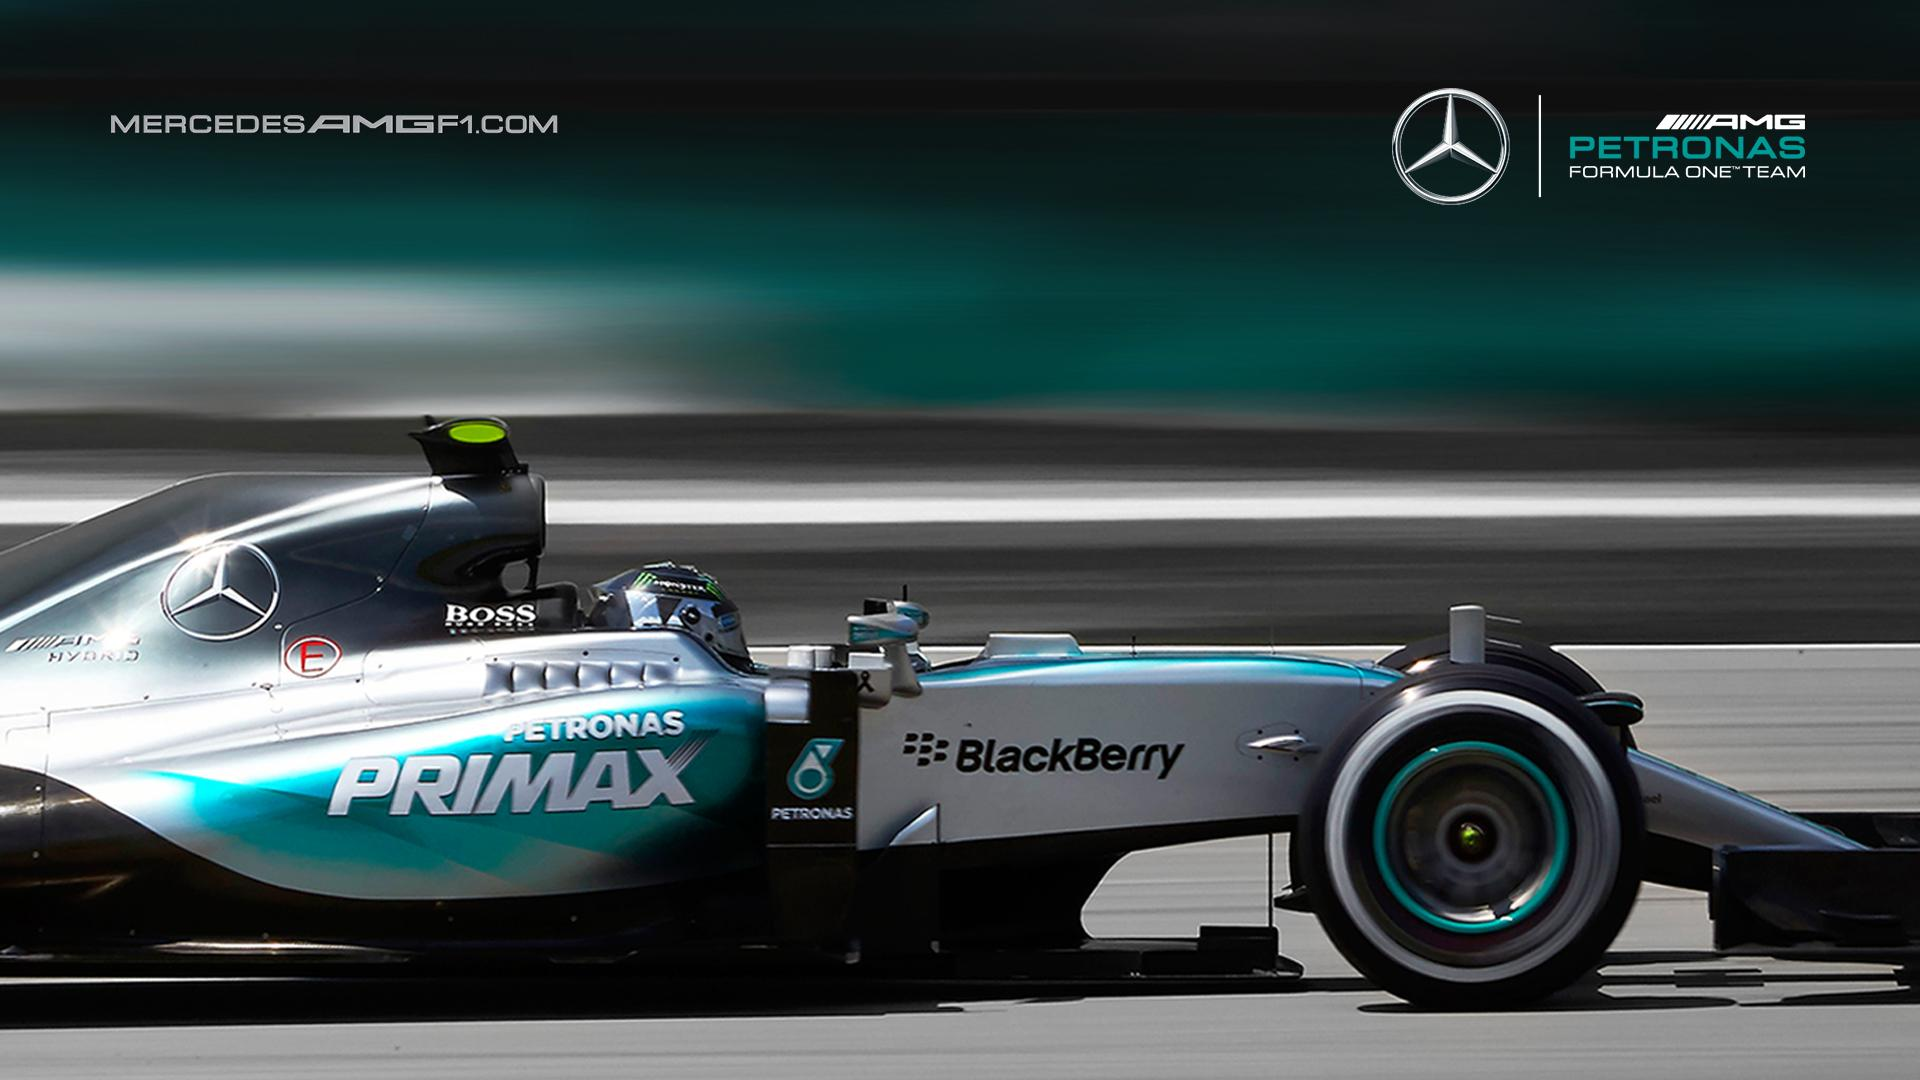 mercedes amg f1 on twitter new 2015 wallpaper selection now available for desktop mobile. Black Bedroom Furniture Sets. Home Design Ideas